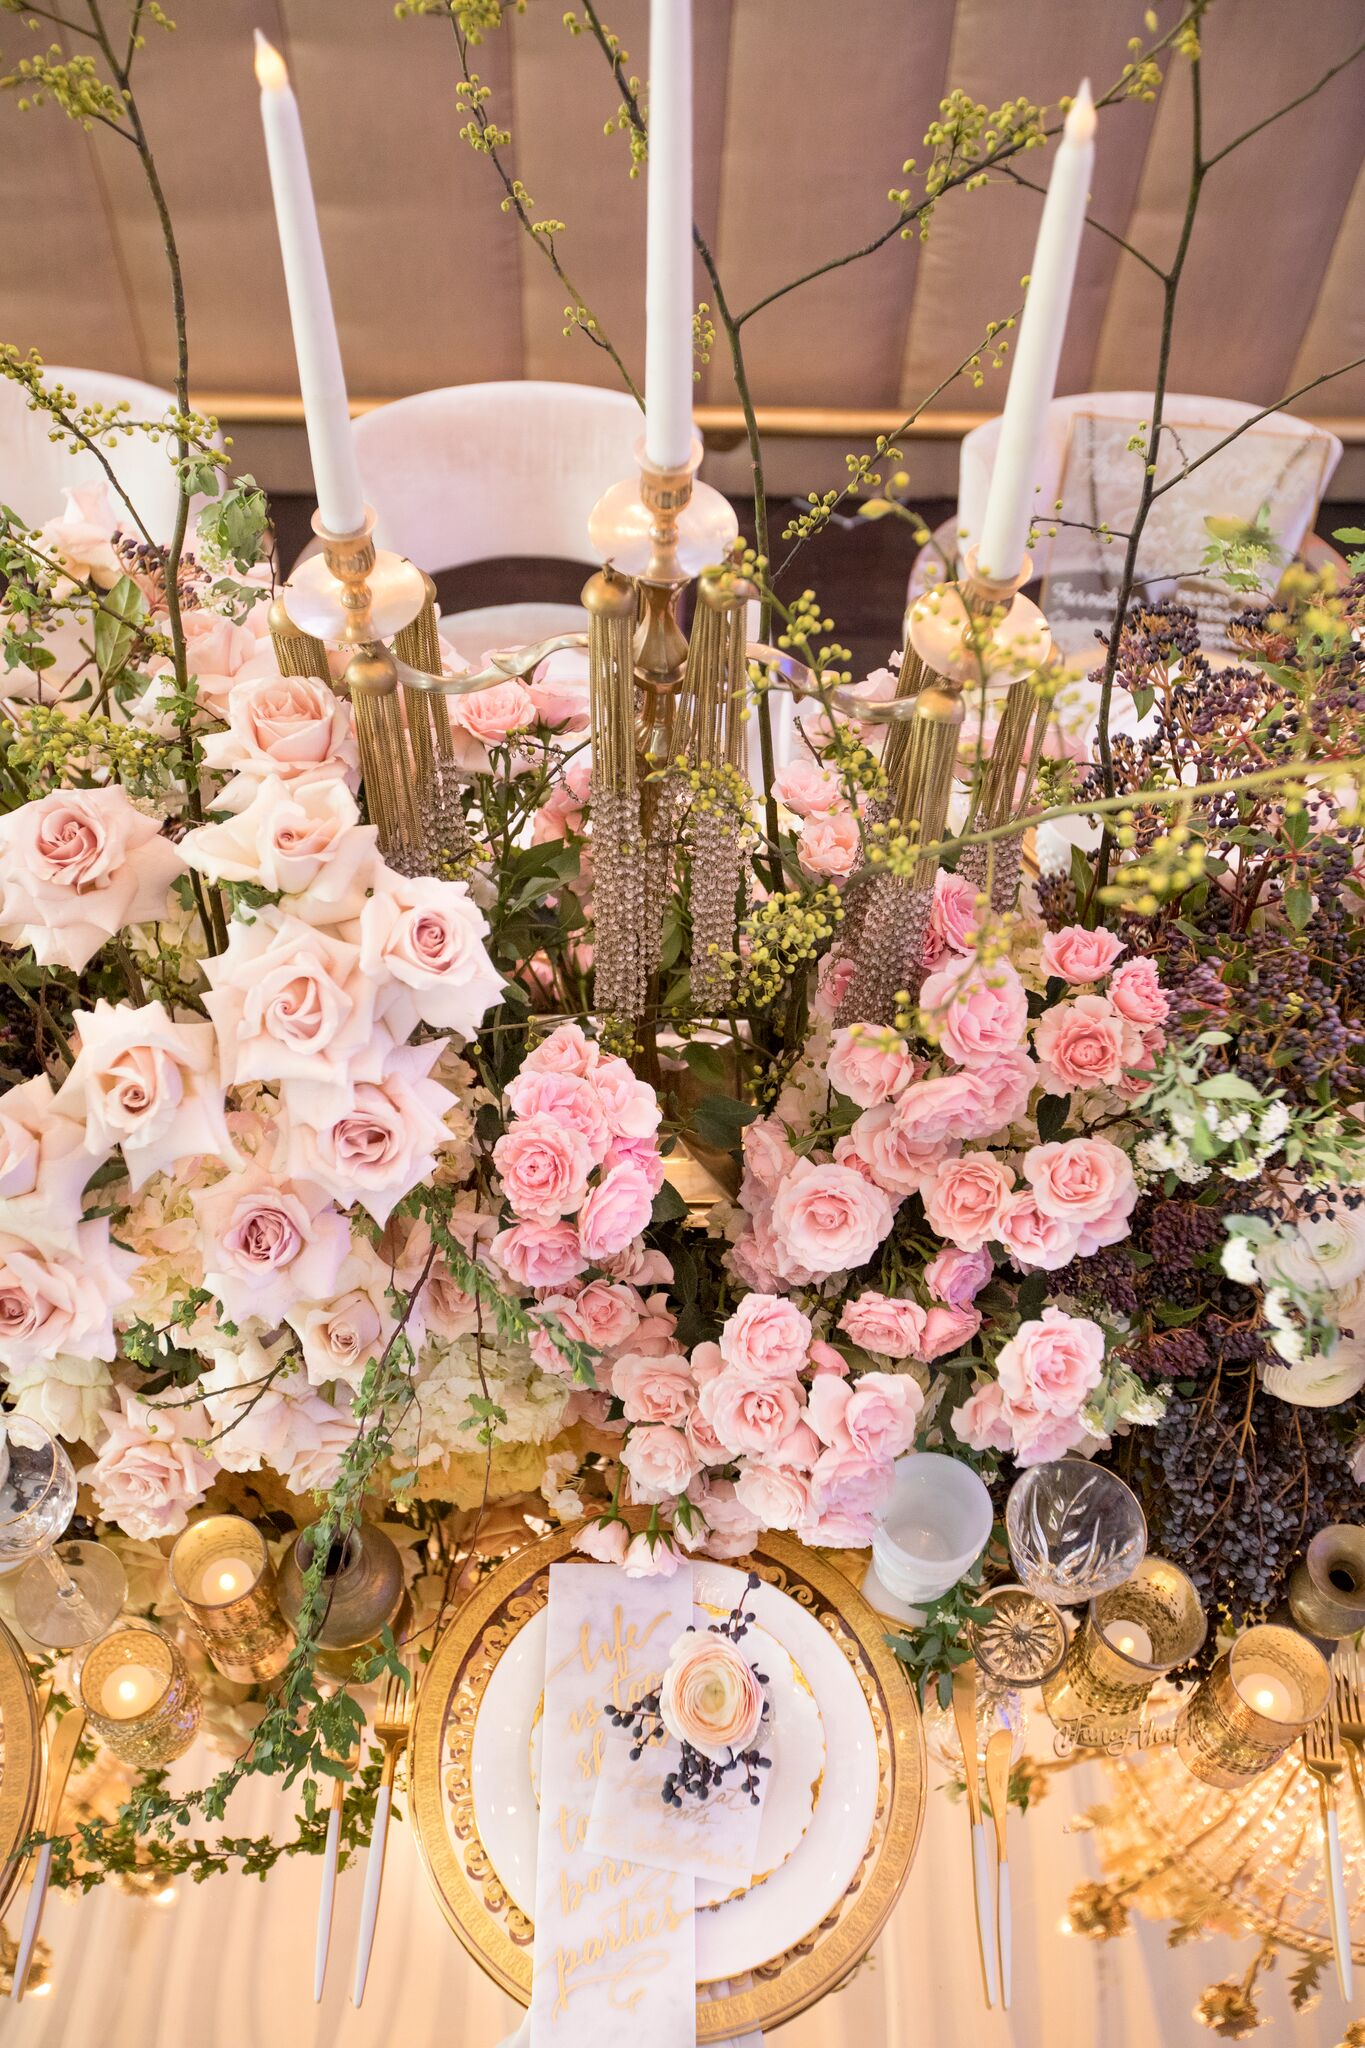 Creative Team:  Floral and Event Designer:  Eddie Zaratsian   Rentals:  Revelry Event Designers   Planning:  Fancy That! Events   Venue:  Vibiana   Tabletop Rentals:  Borrowed Blu   Catering: Rafi's Pastry